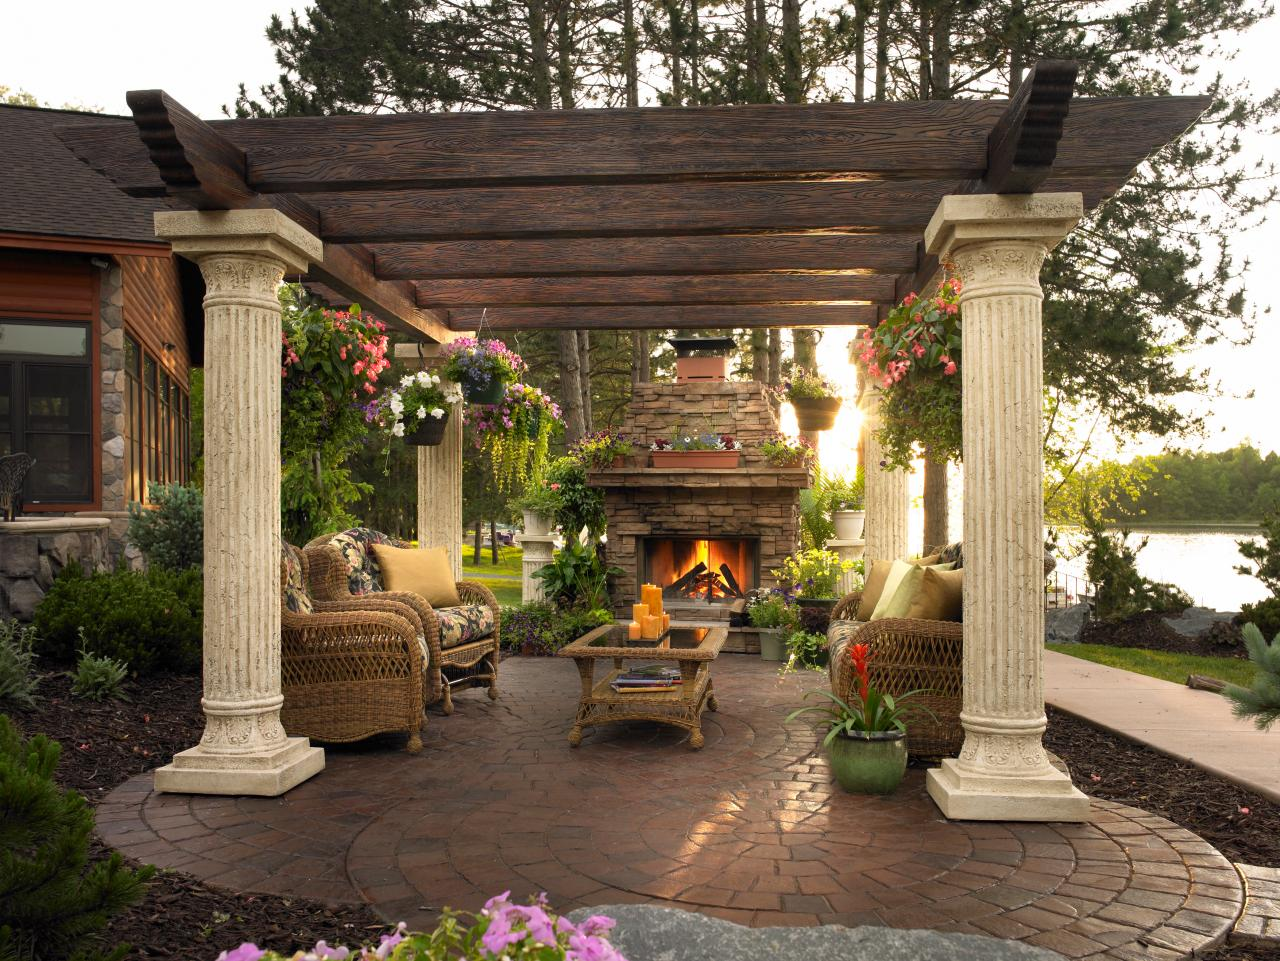 selling the outdoor room - The Outdoor Room